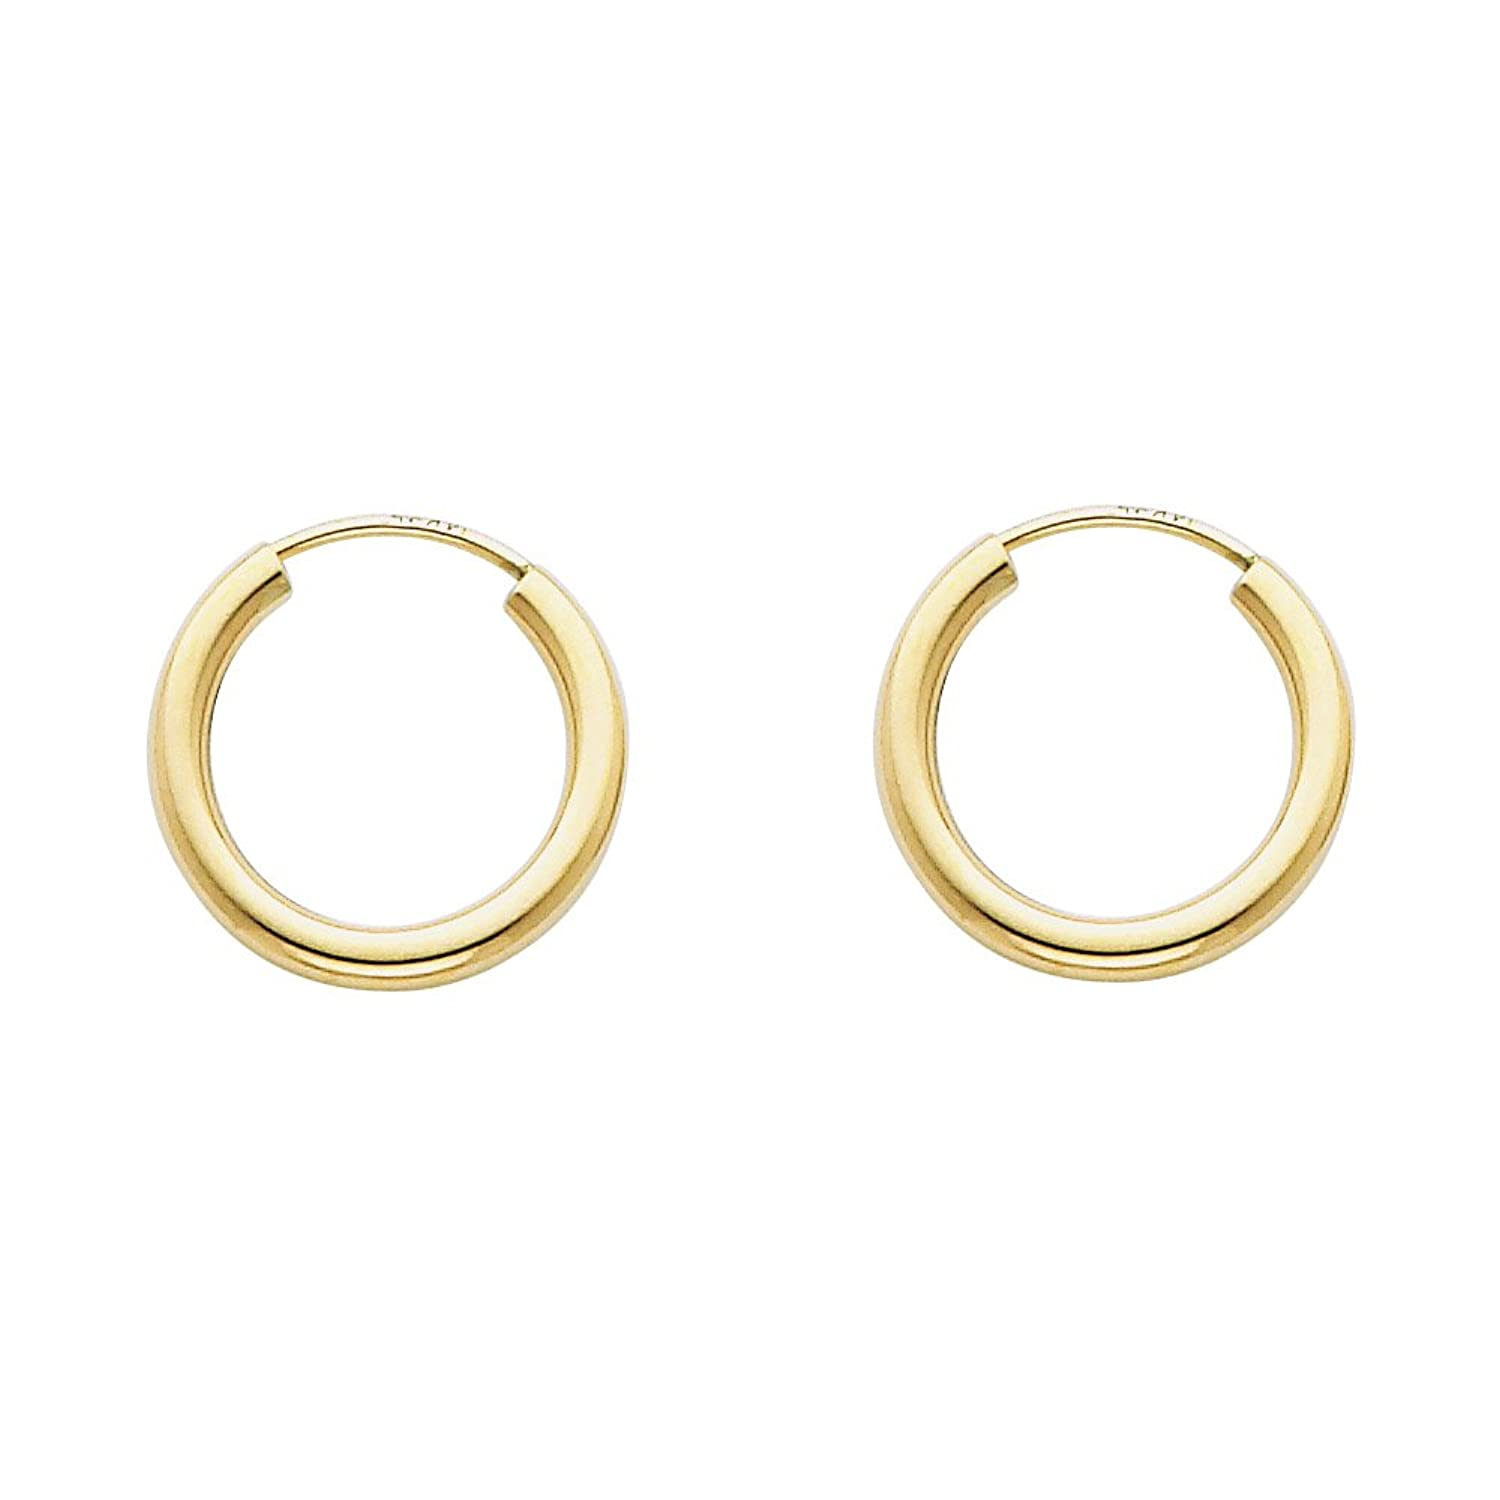 Amazon: 14k Yellow Gold 2mm Thickness Endless Hoop Earrings (15 X 15  Mm): Jewelry